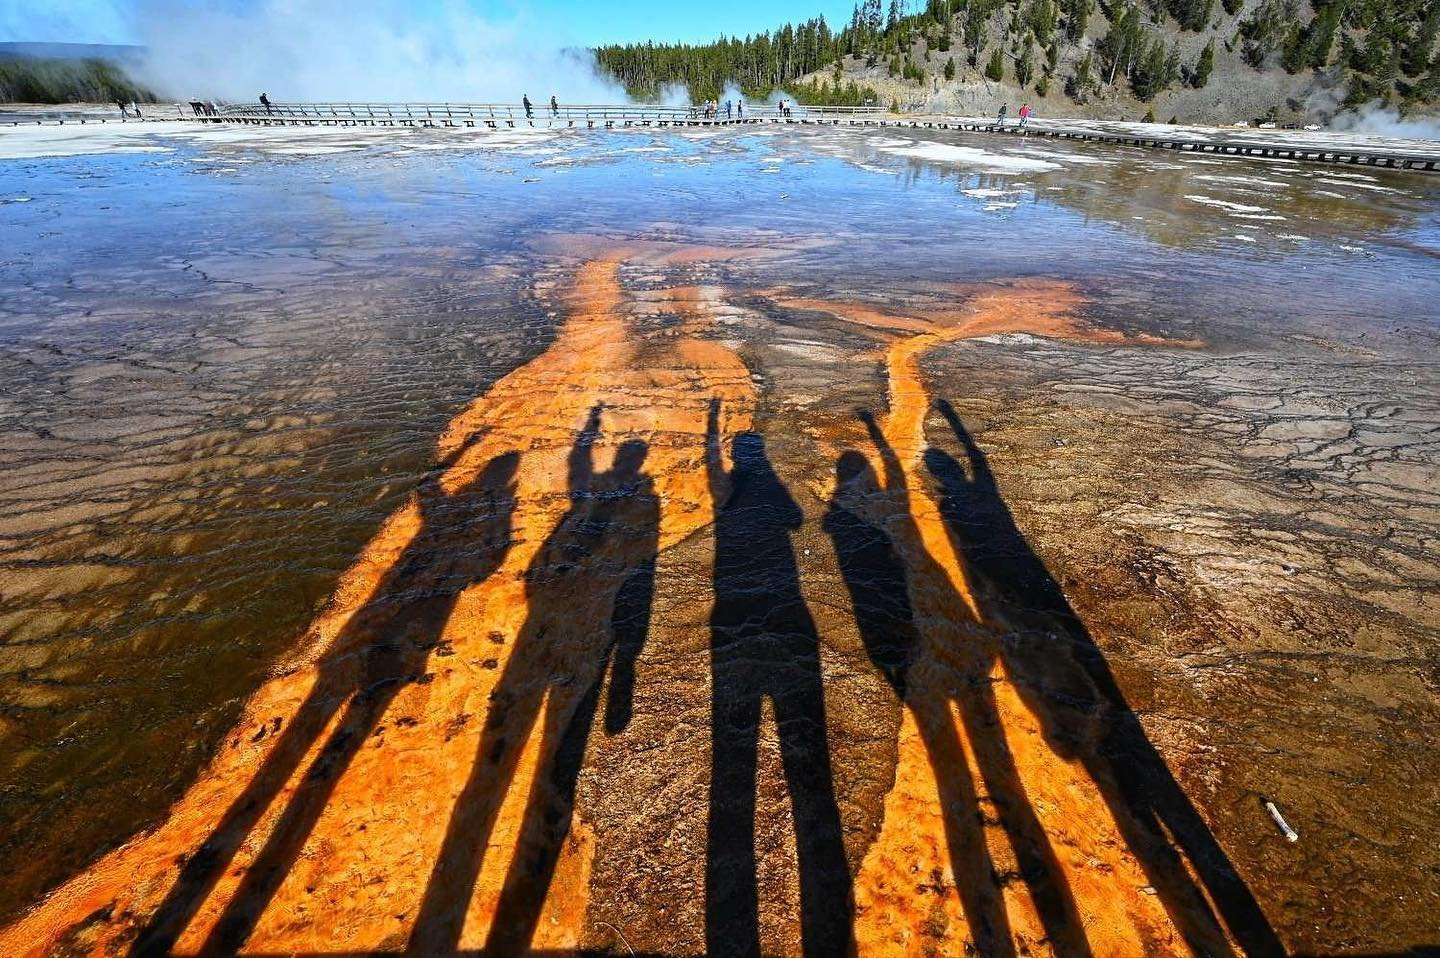 Photo by user rebecca0613, caption reads Another family trip checked. See you and until next time. 👋👋👋 #yellowstone #sanfrancisco #grandprismaticspring #familytrip #byebye #yellowstonenationalpark